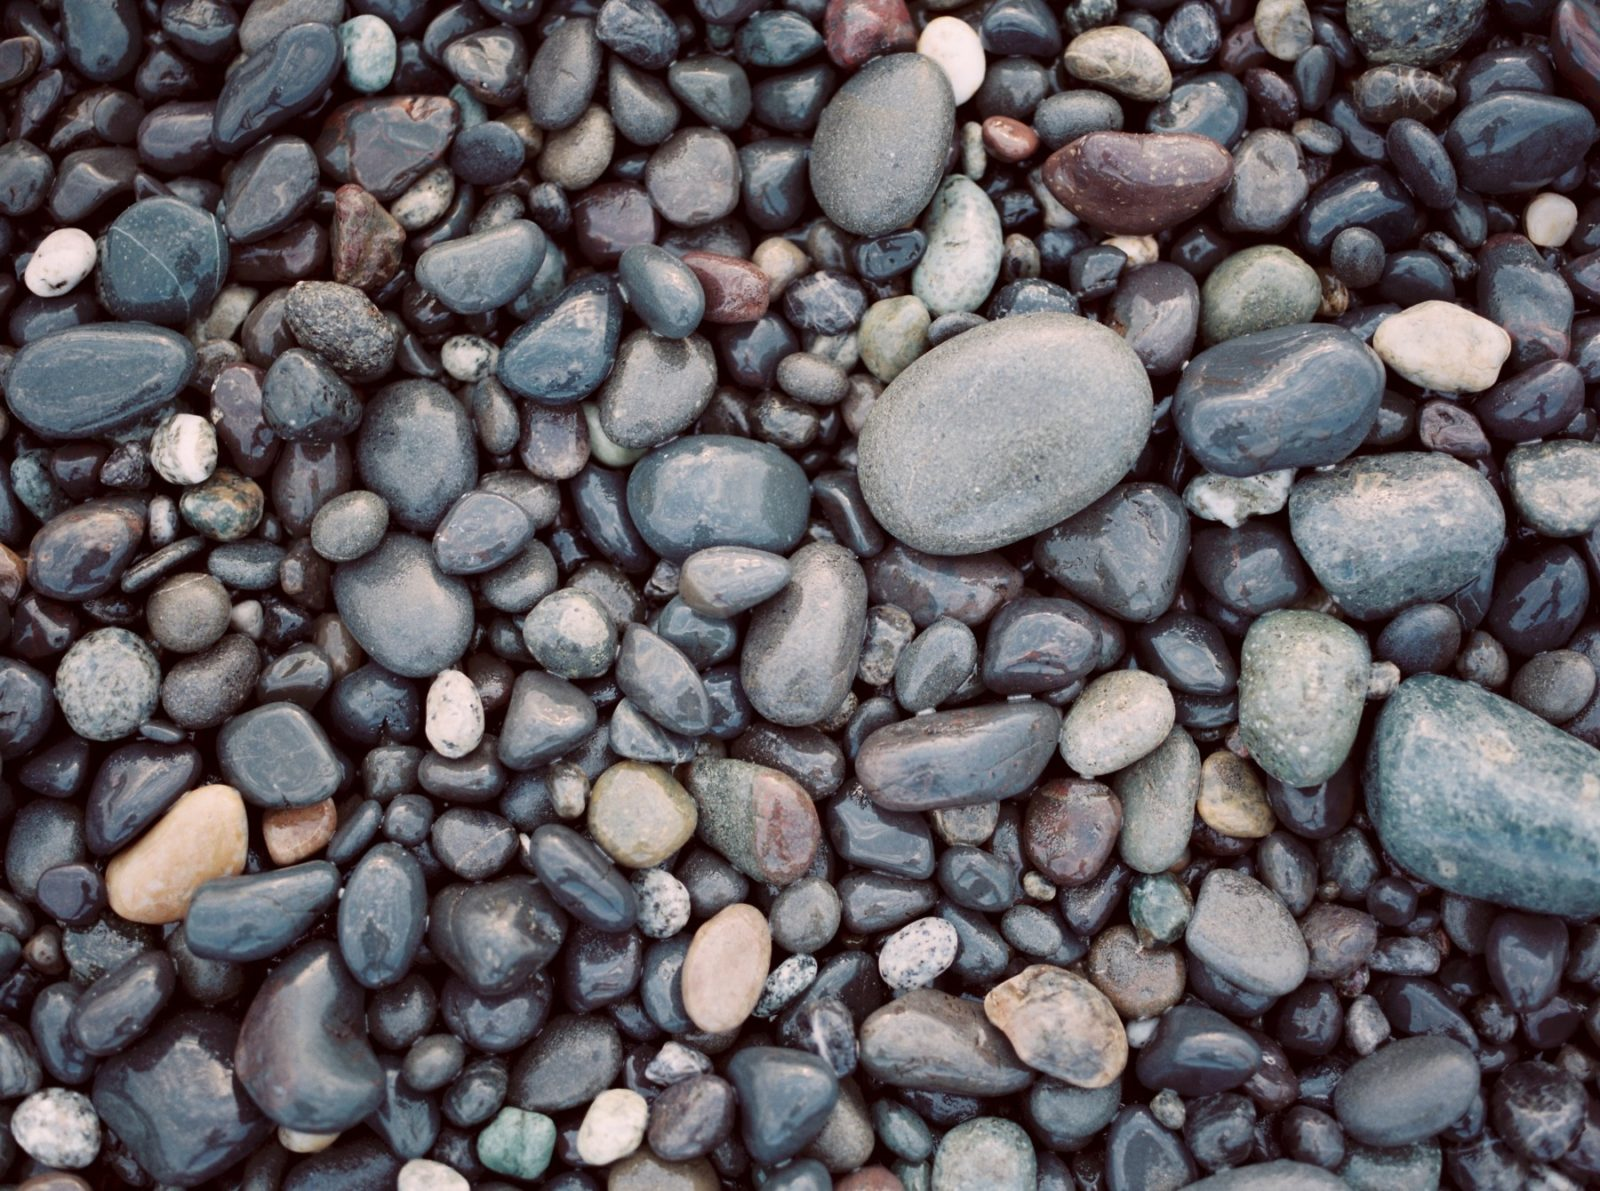 What Are The Benefits Of Having A Hot Stone Massage in Vermont?